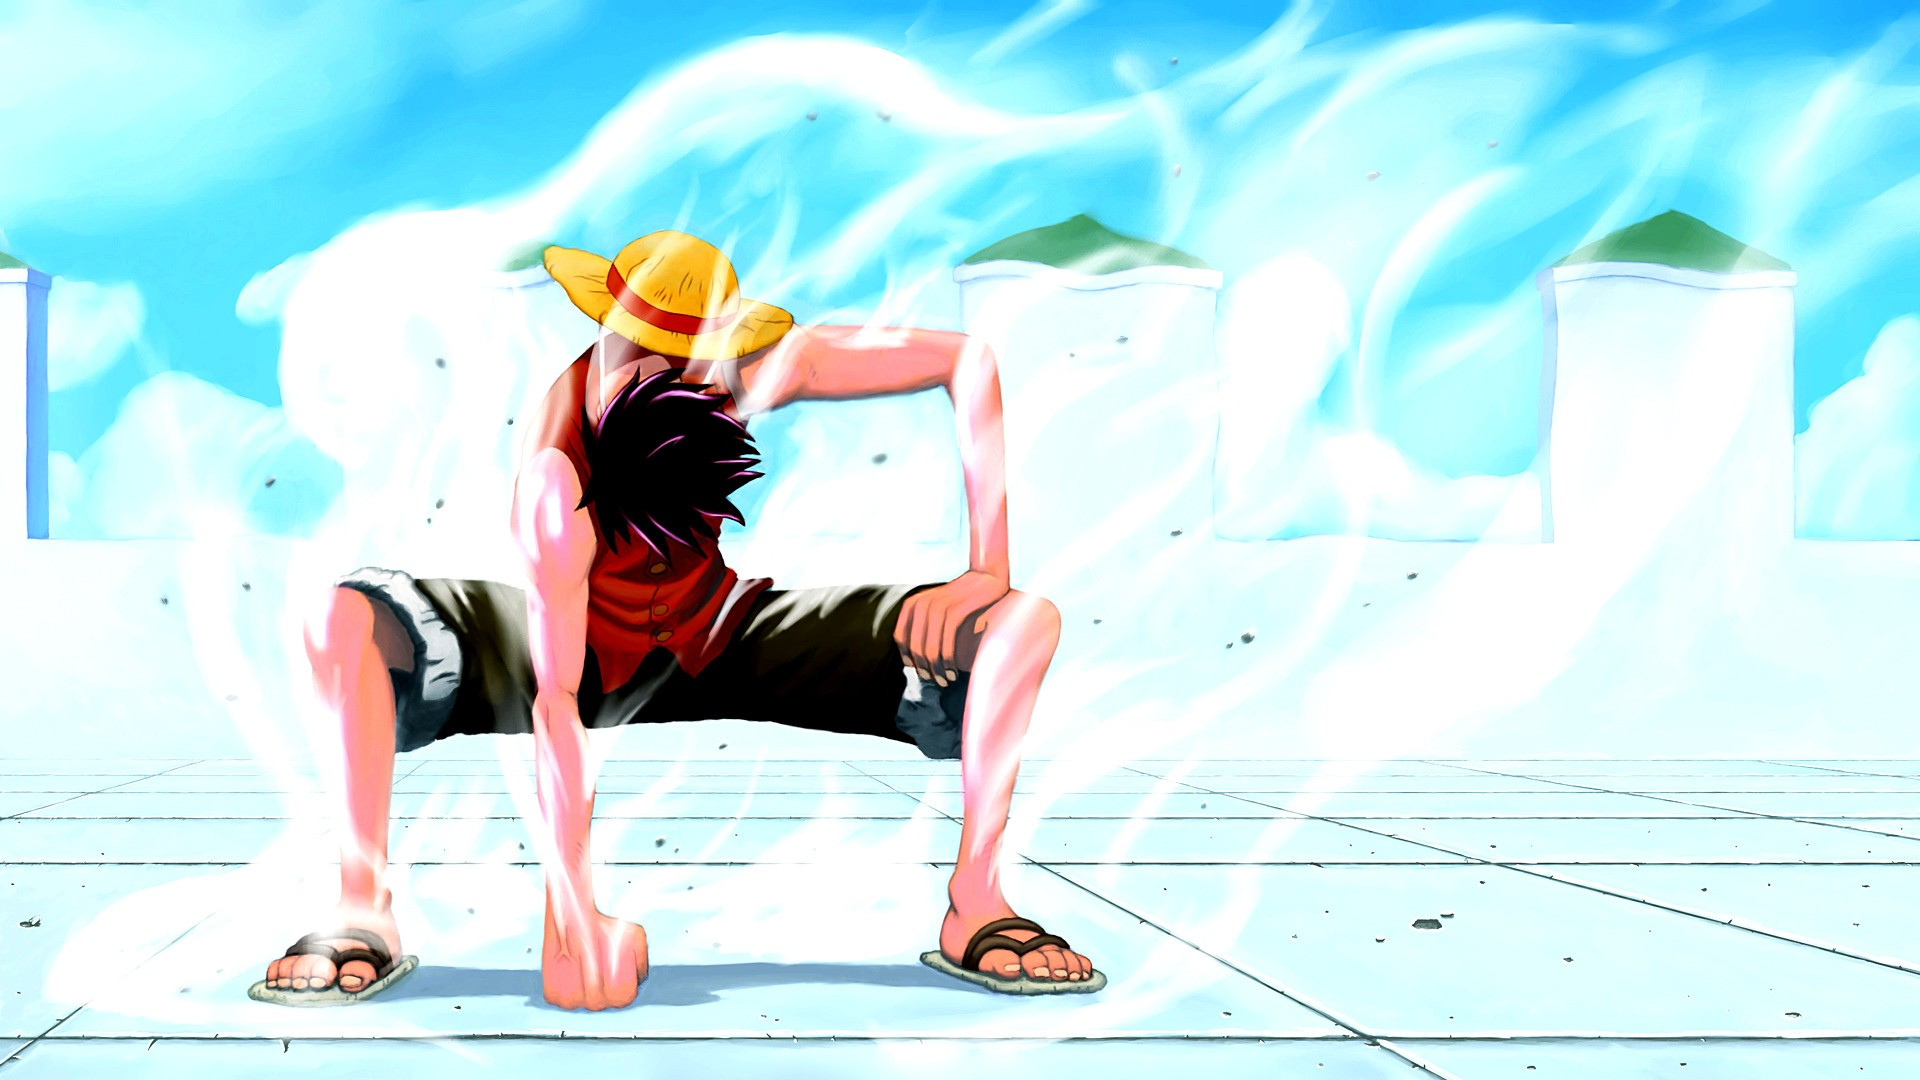 Wallpaper Luffy ngầu